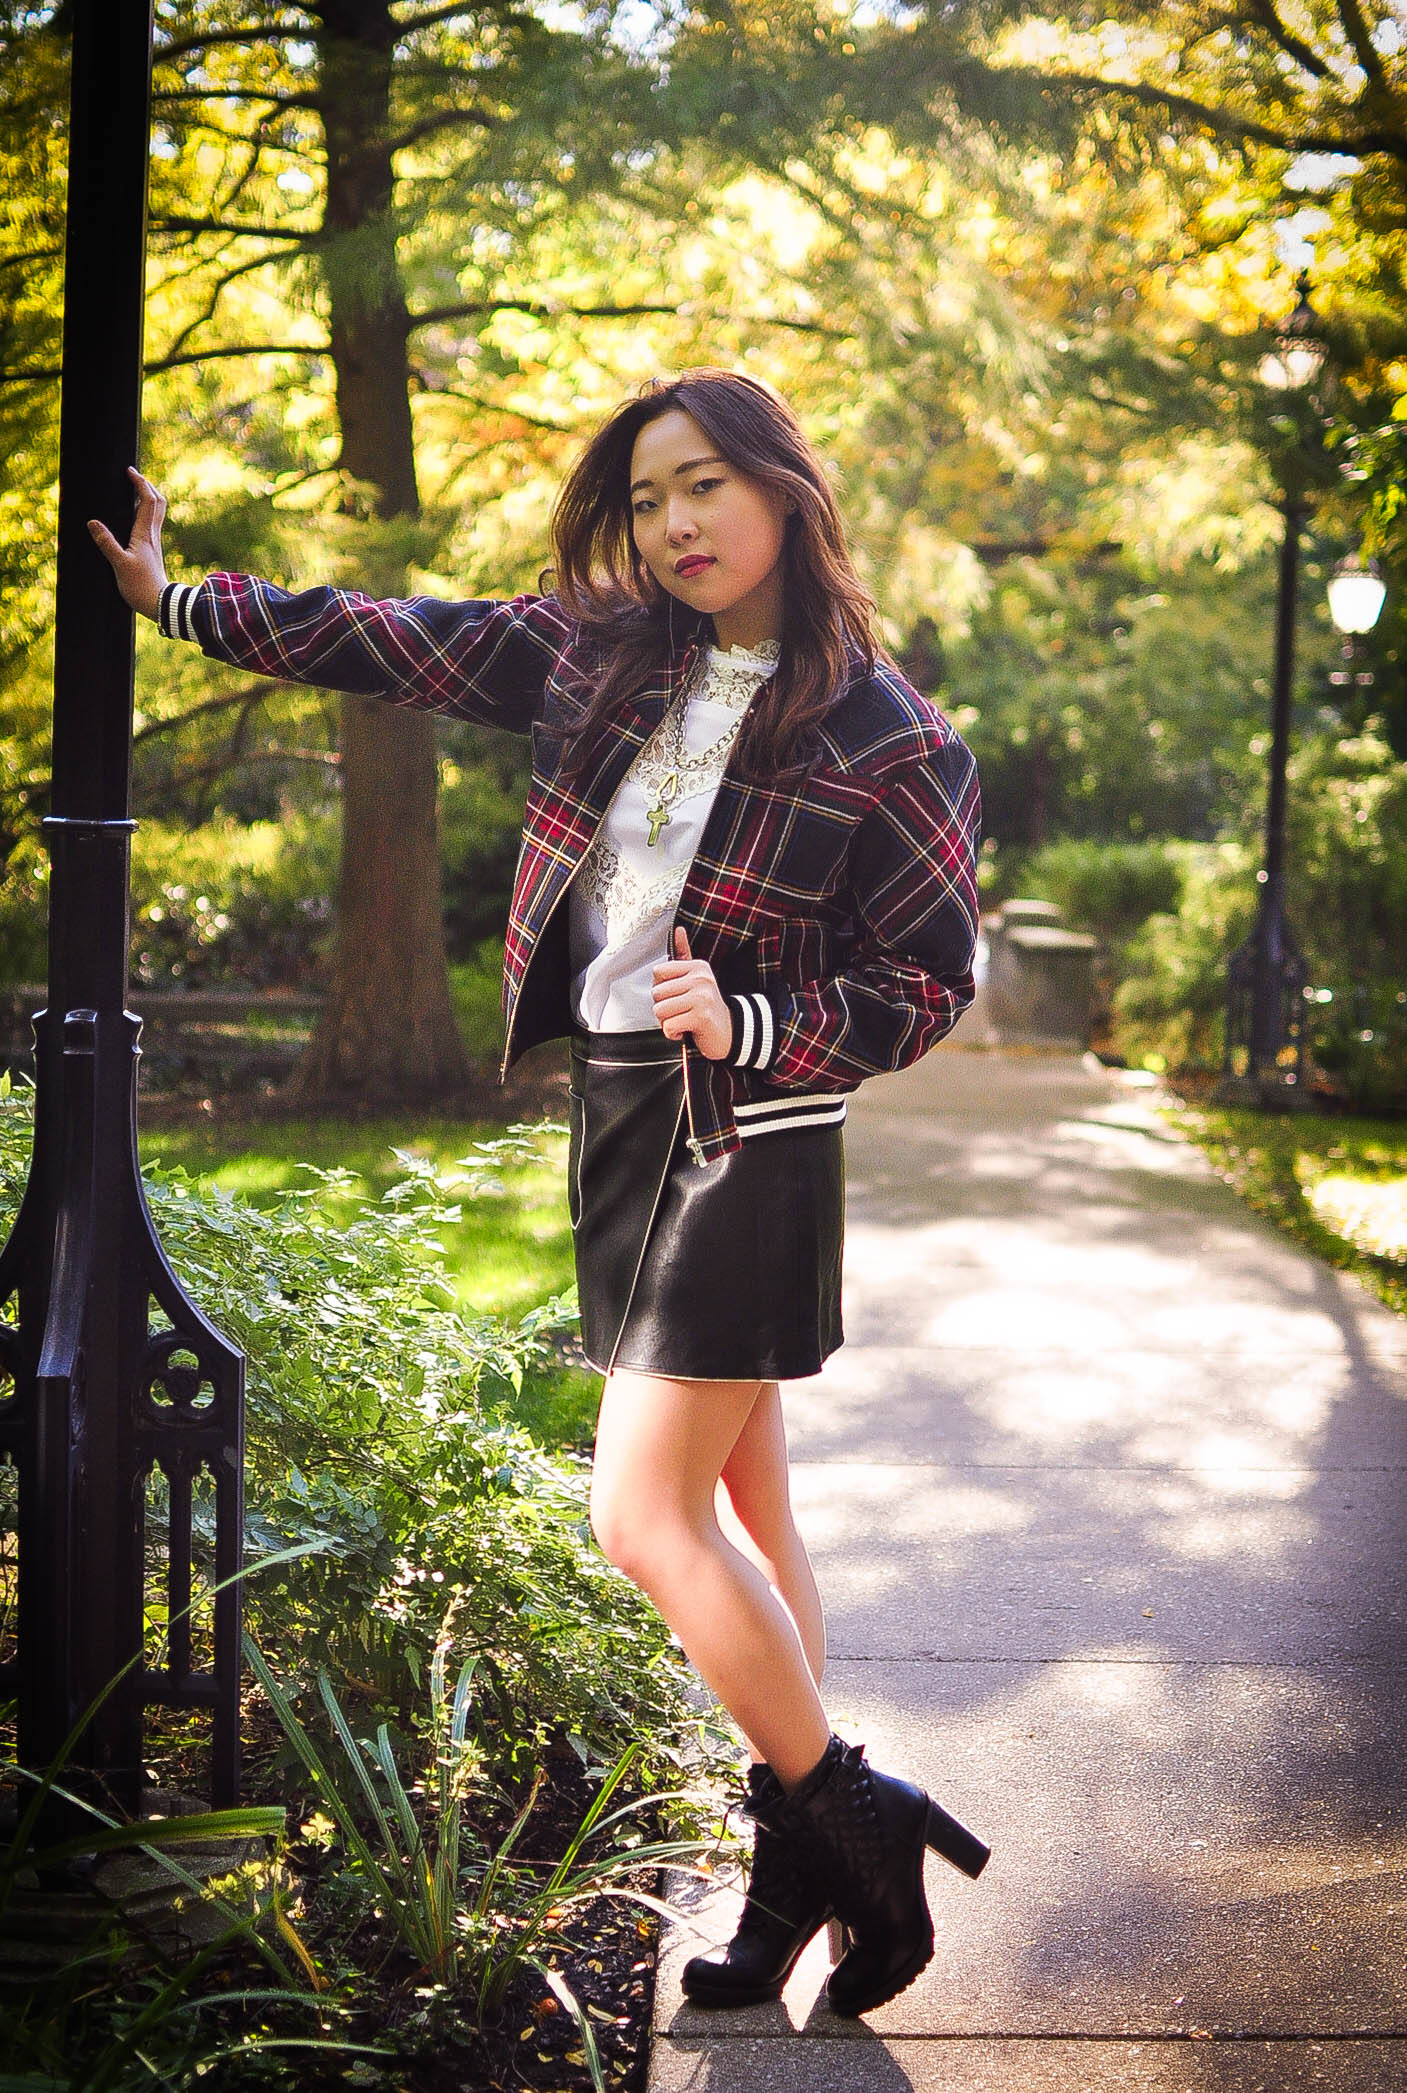 For this look, I'm wearing a tartan bomber jacket draped over a white lace blouse, coupled with a leather skirt, all from Korea and chunky boots from Guess.